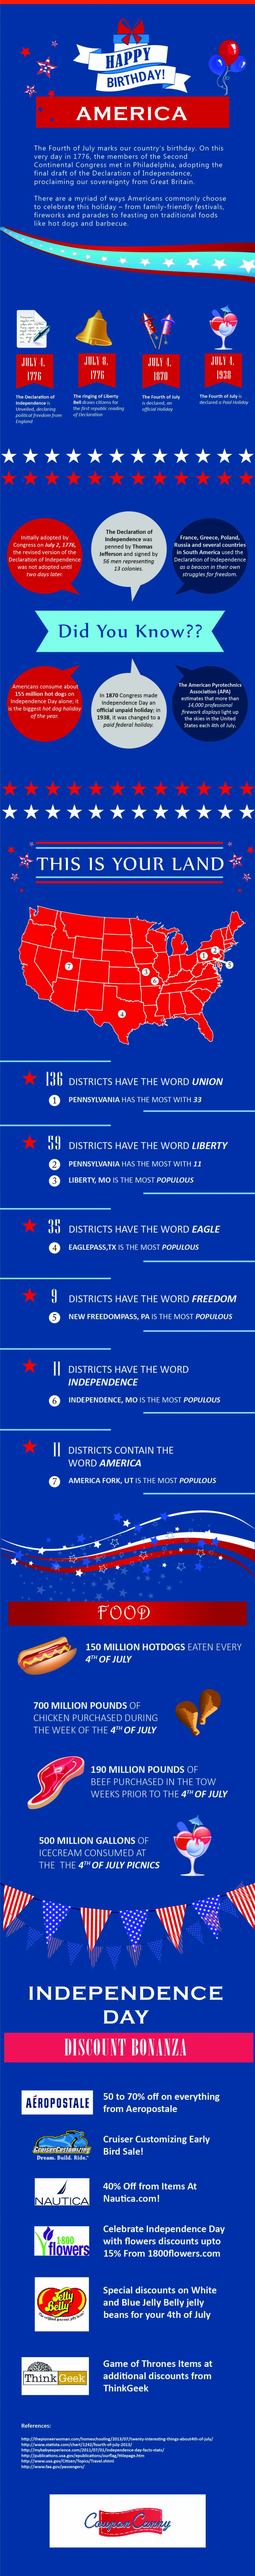 2014 4th of July Celebration with Deals and Coupons Infographic